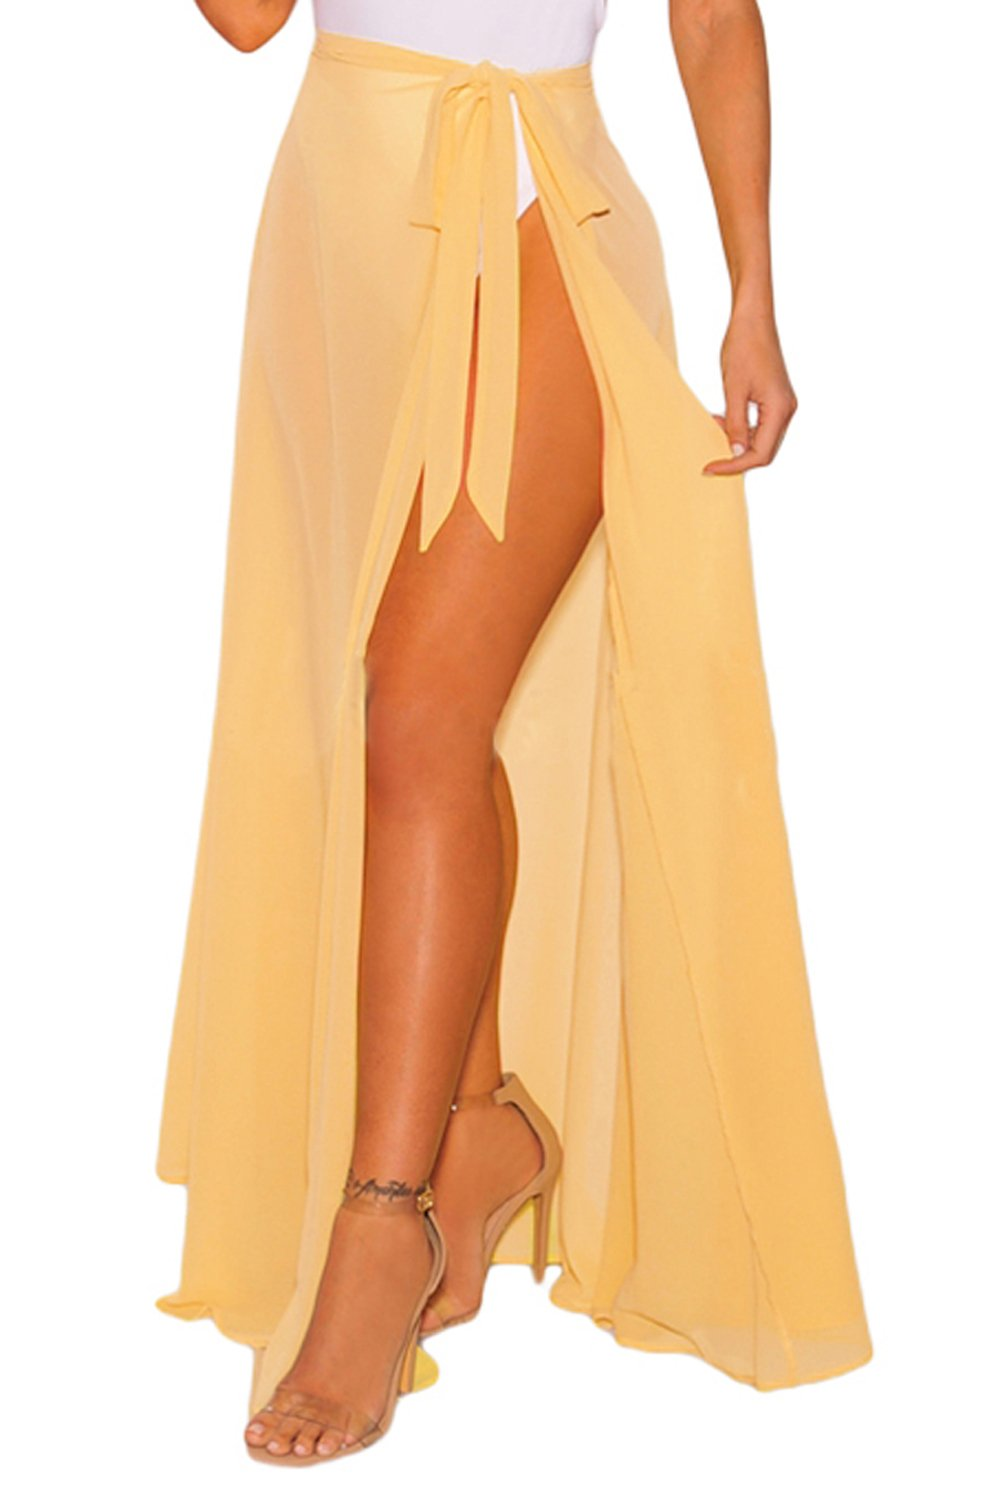 FUSENFENG Womens Wrap High Waist Summer Beach Cover Up Long Maxi Skirt (Yellow, One Size)